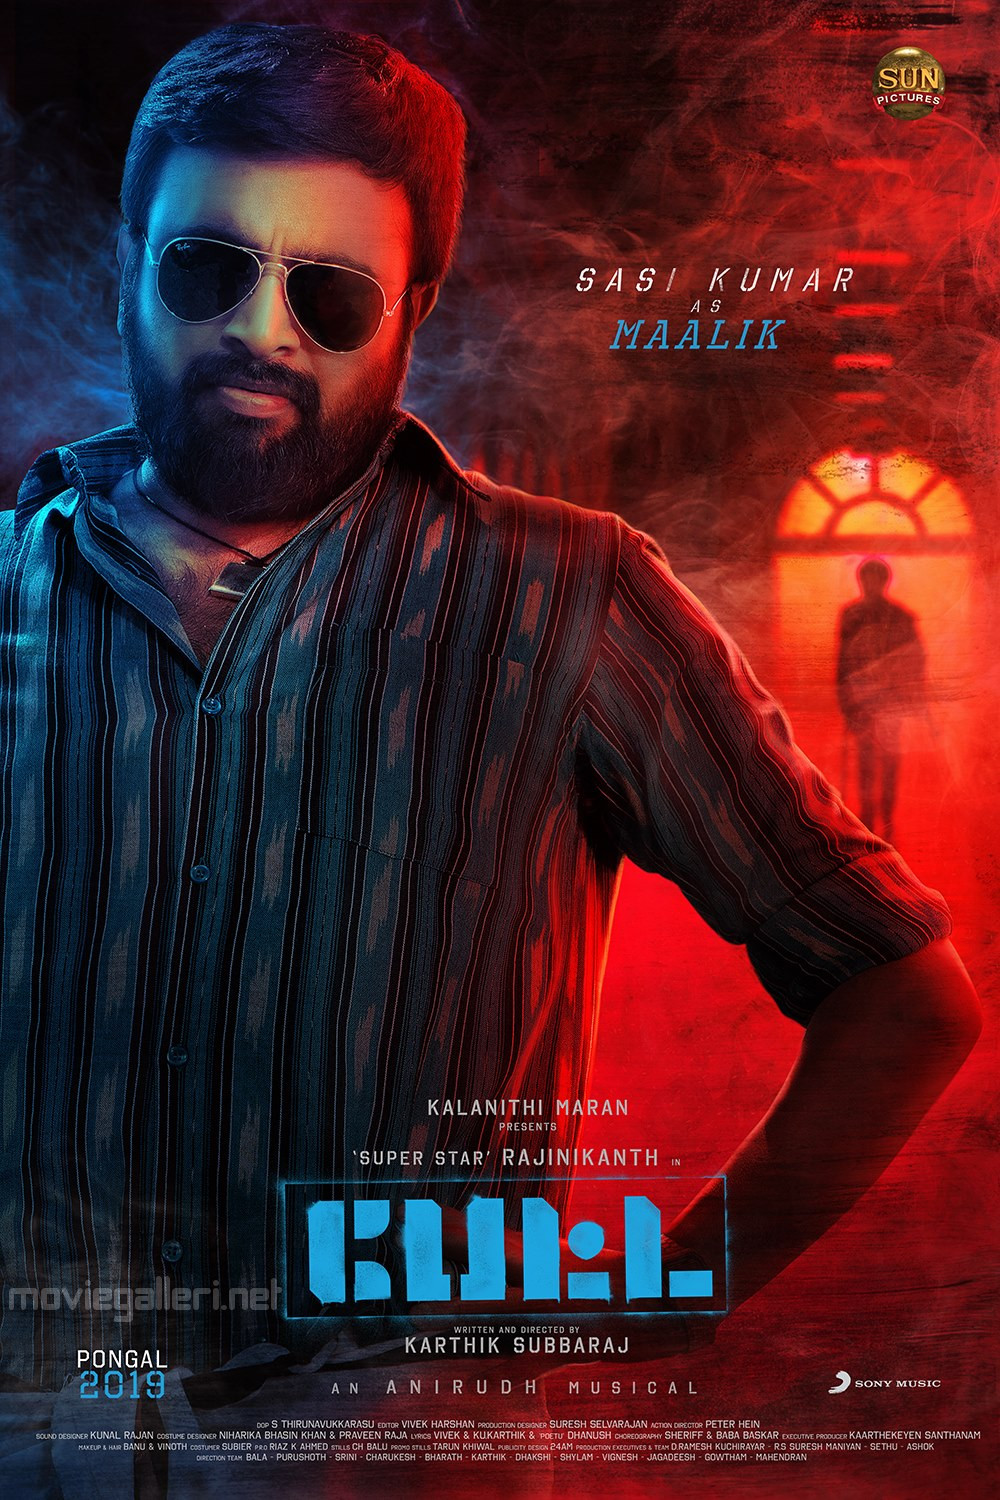 Actor M.Sasikumar as Maalik in Petta Movie Character Poster